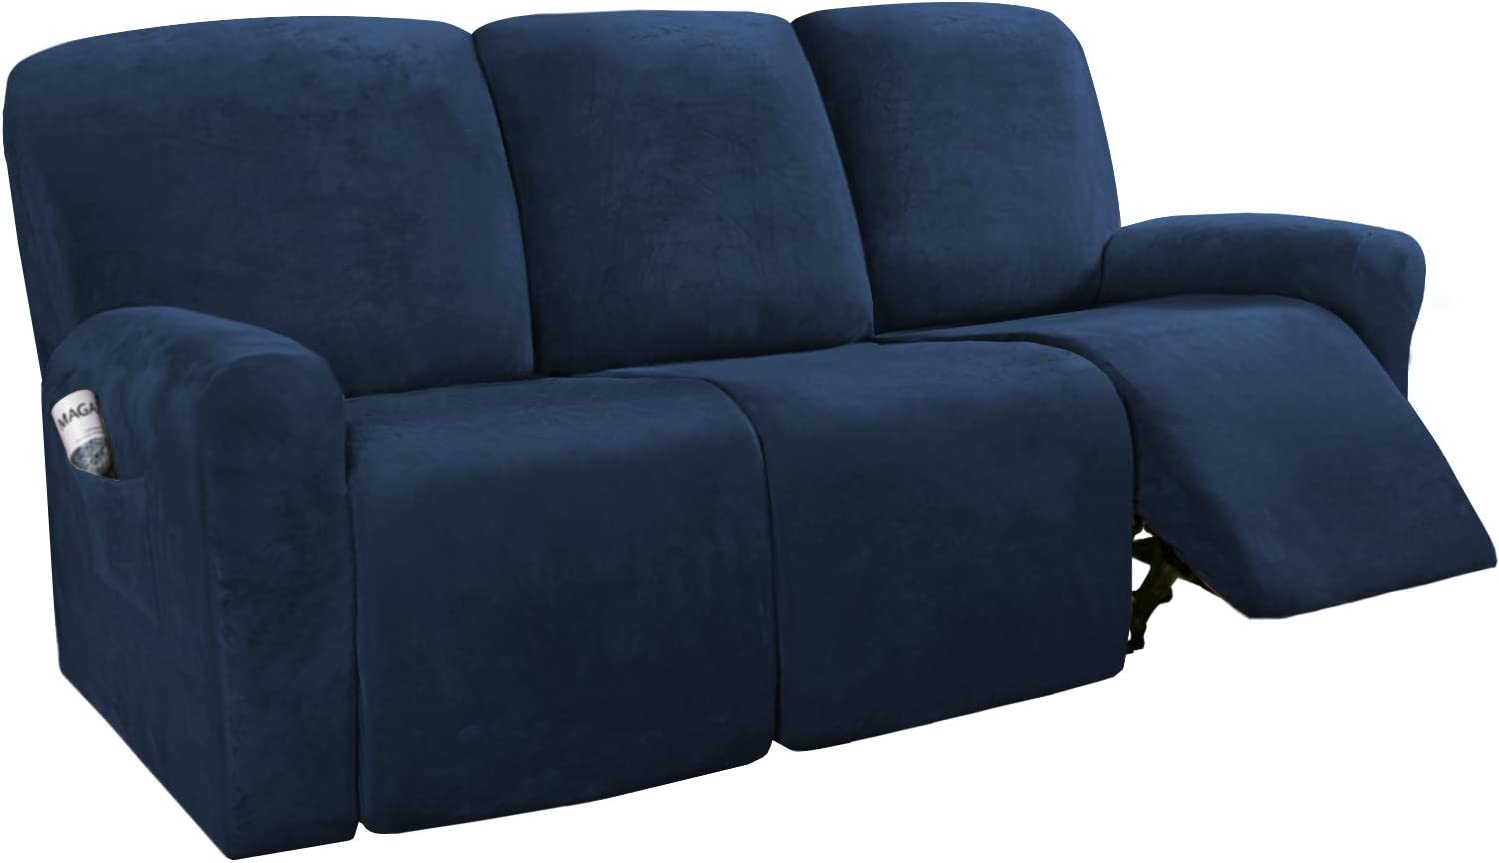 614niWAuZNL. AC SL1500 - Best Slipcovers For Leather Sofas and Couches (Non-Slip) - ChairPicks